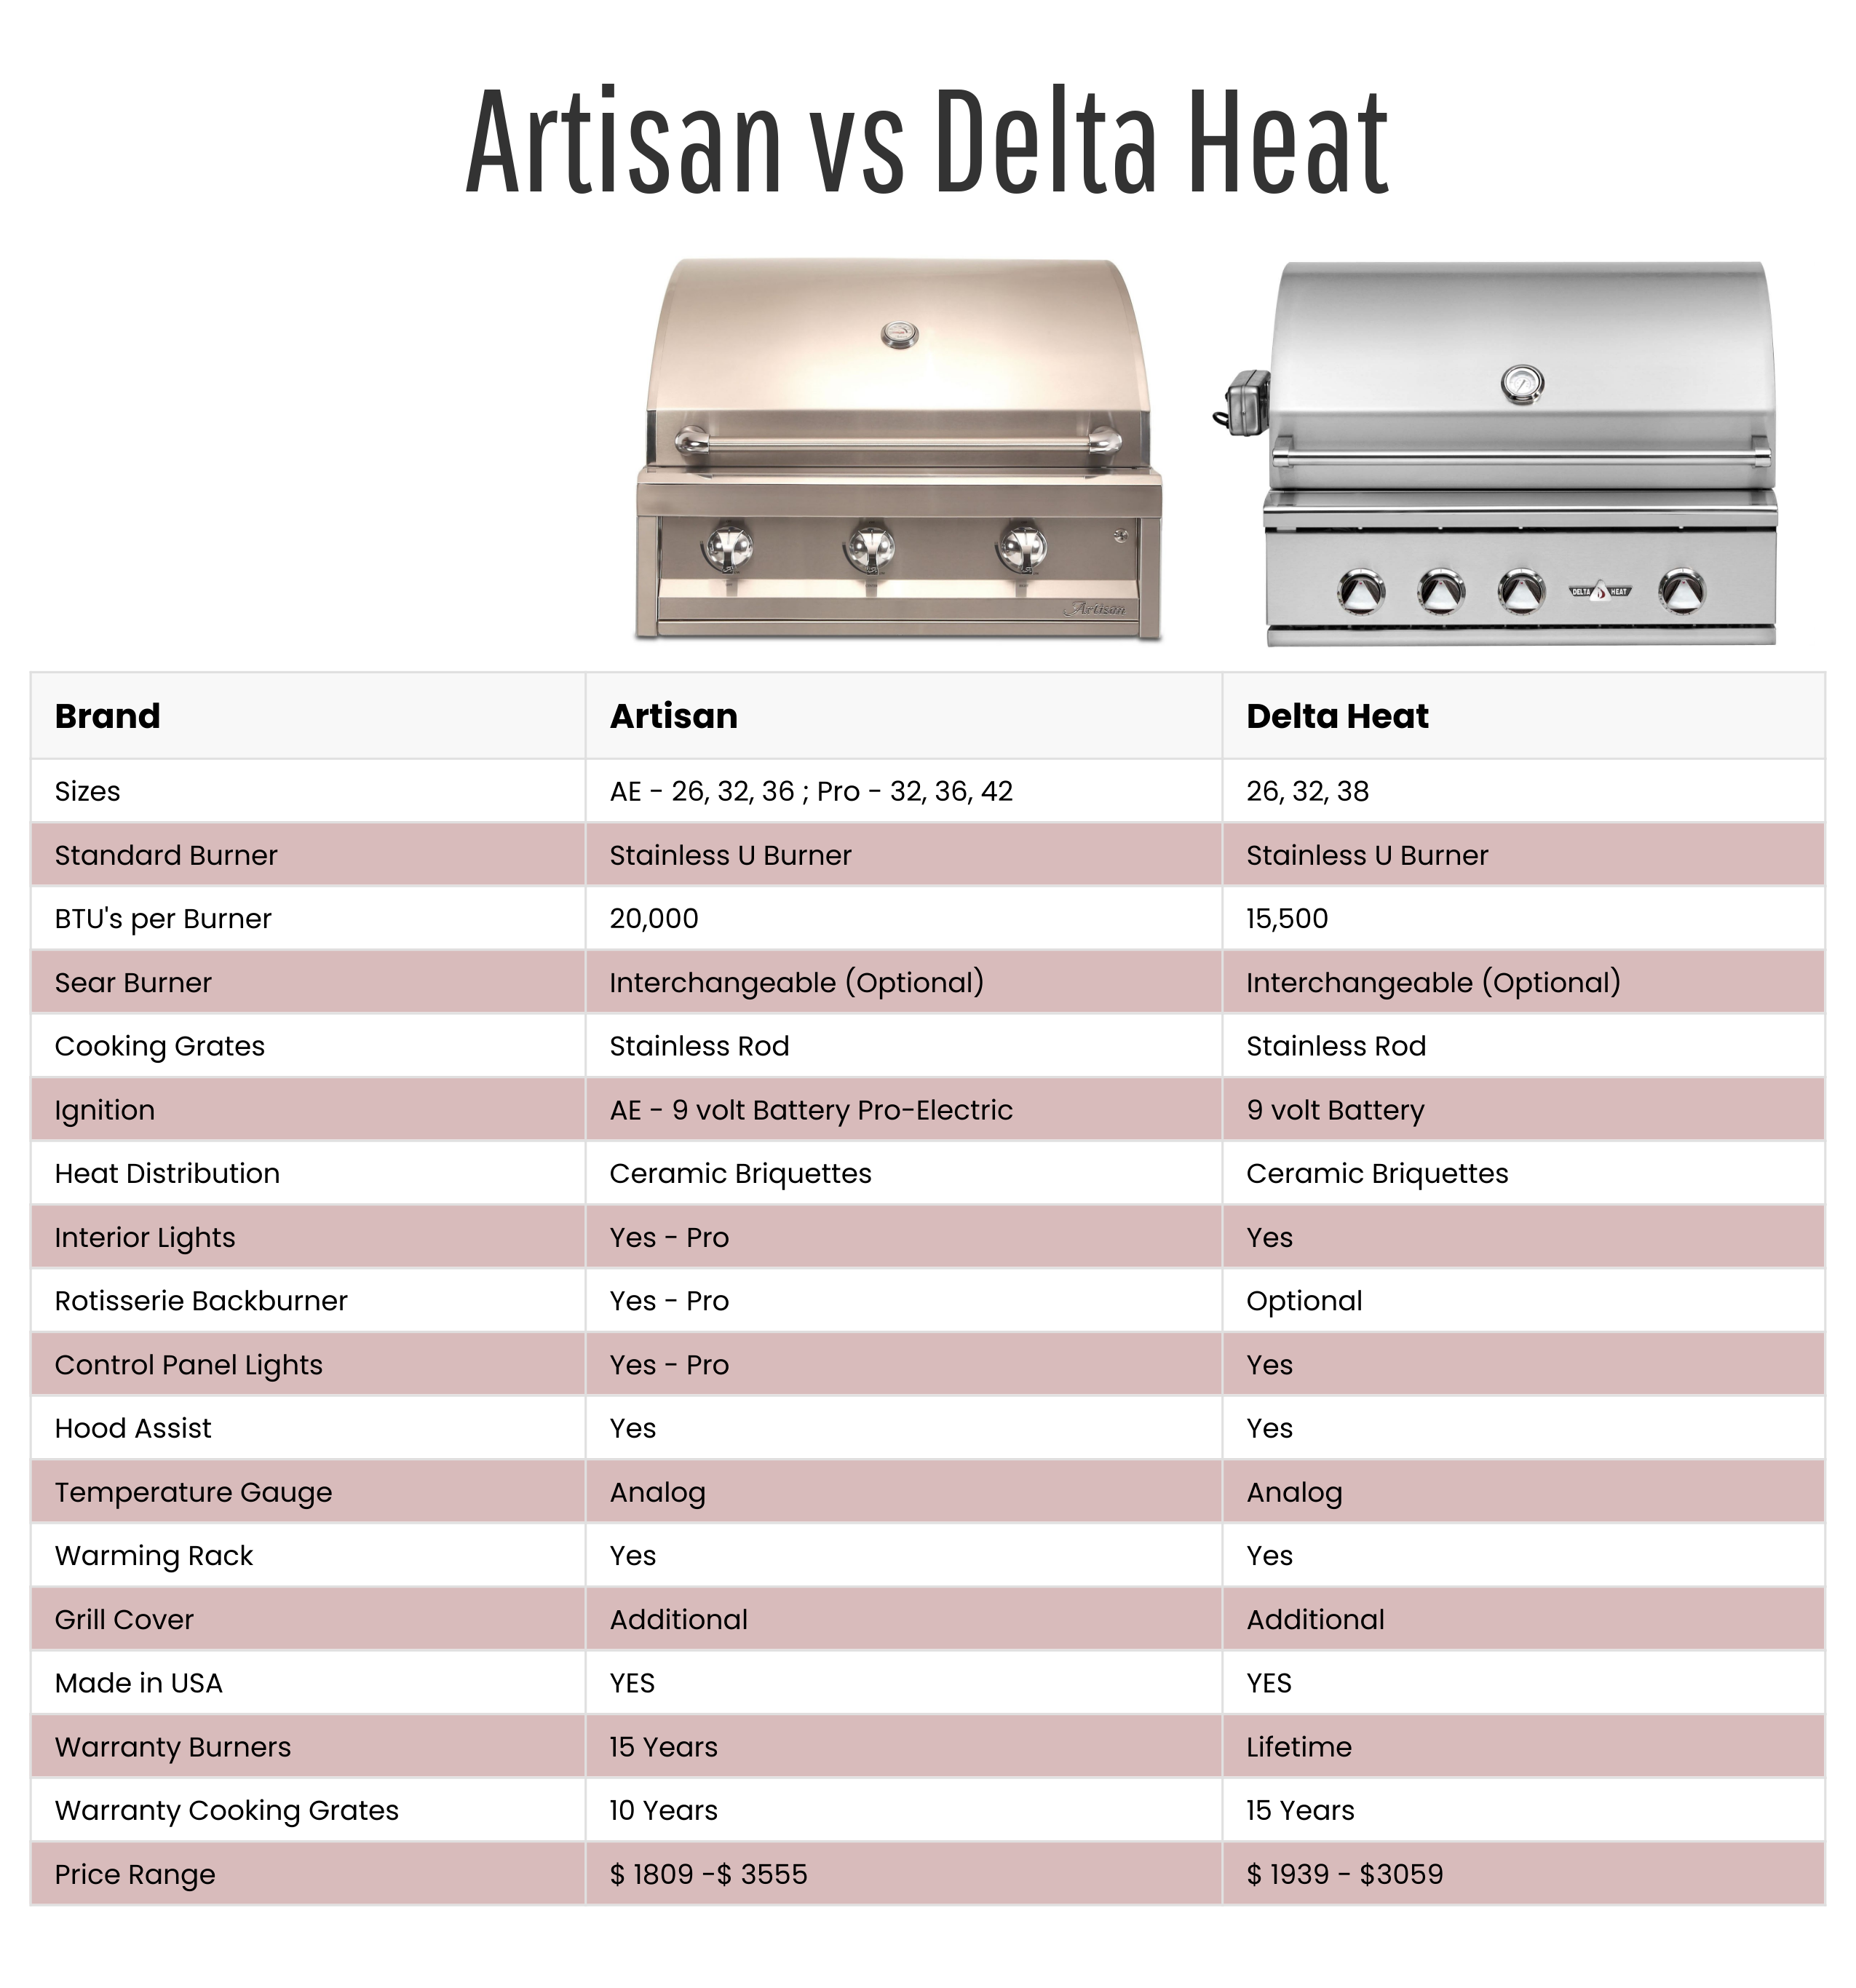 Artisan vs Delta Heat